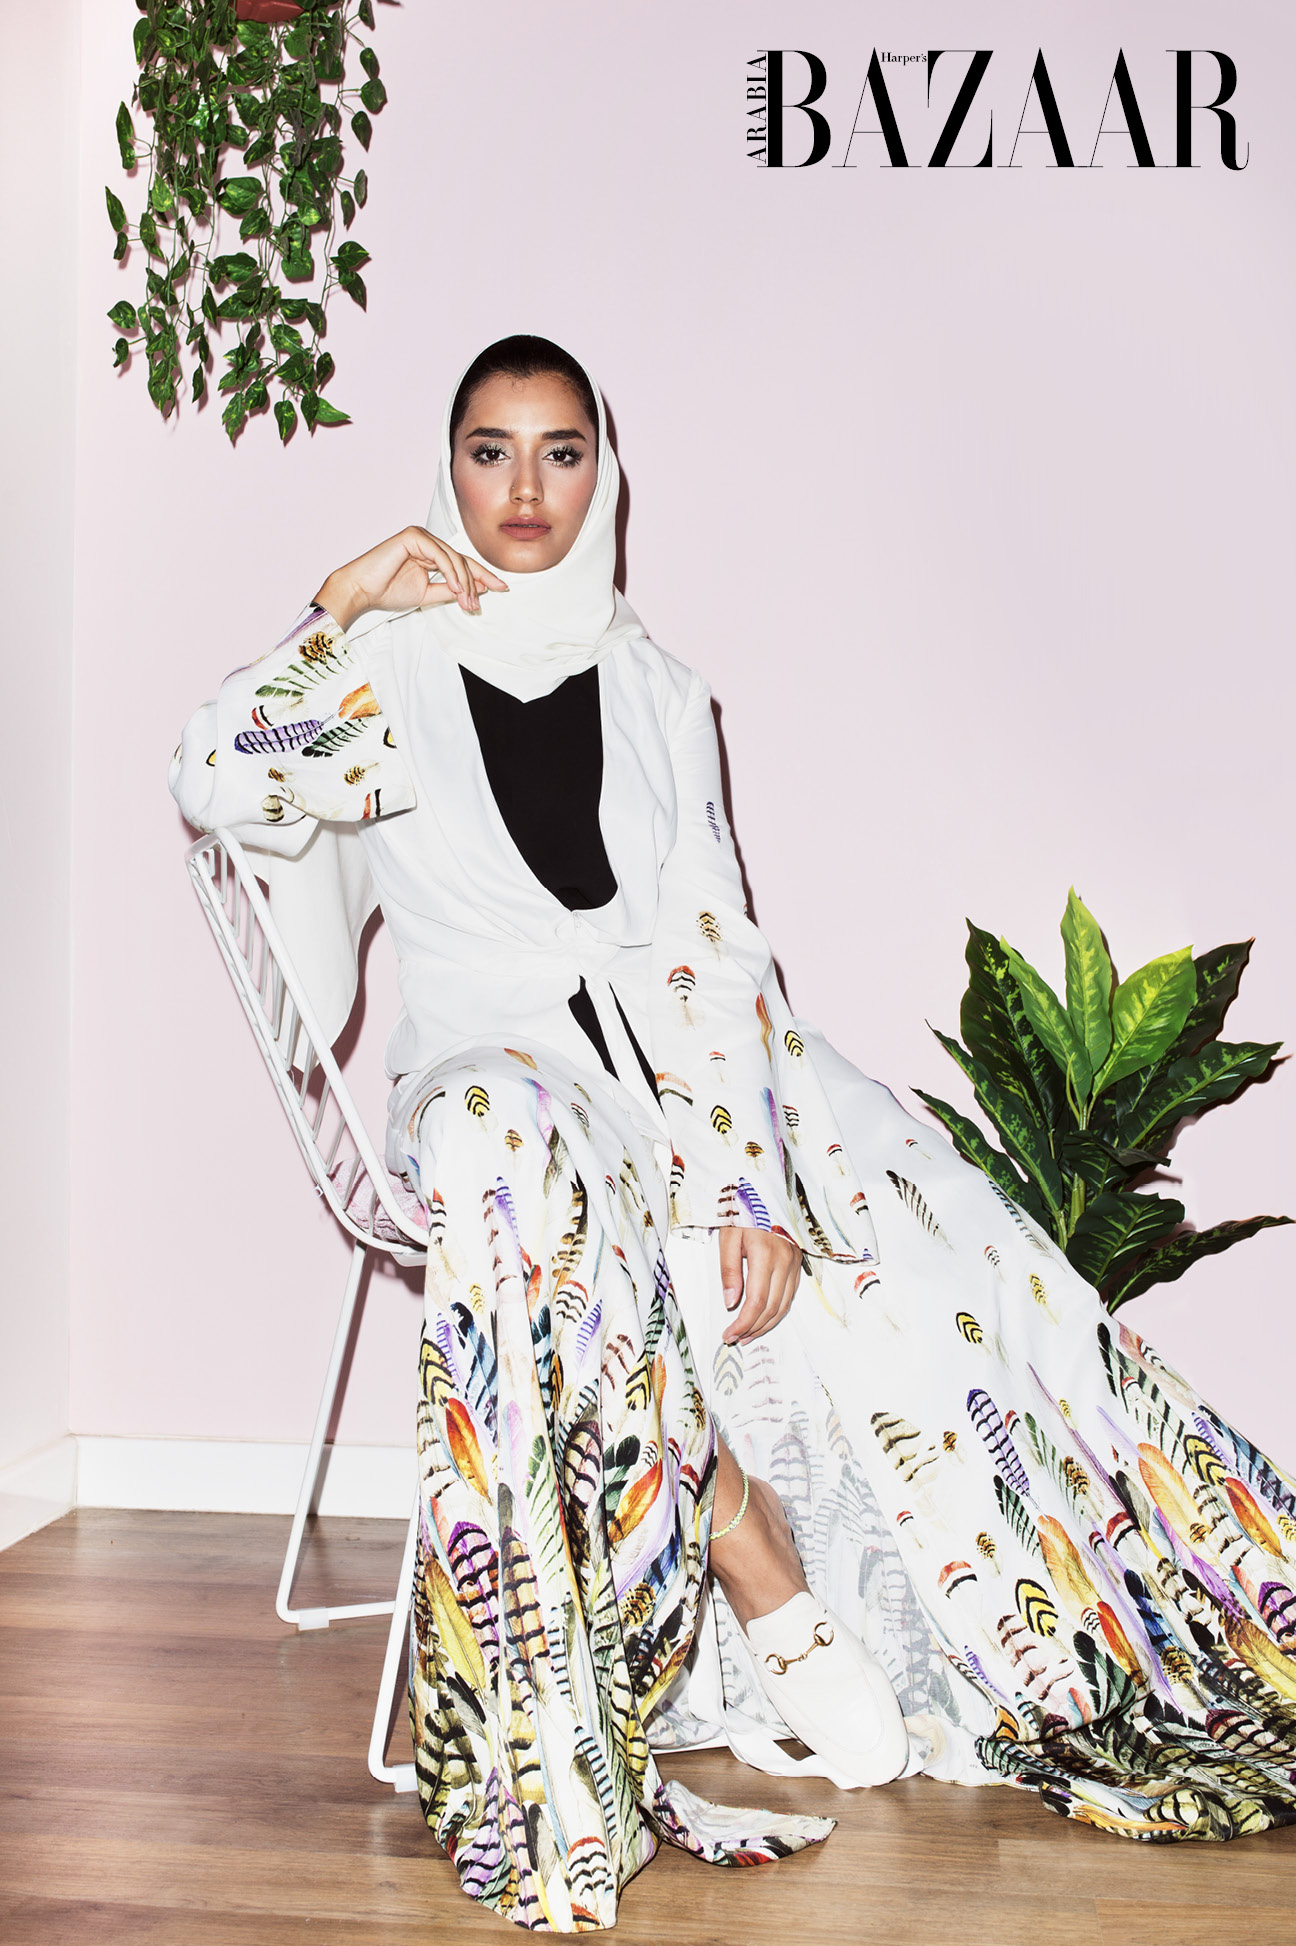 As we enter into the Holy Month, and Net-a-Porter launches its biggest Ramadan collection to date, three of the region's most intriguing style aficionados discuss their wardrobe choices through Ramadan and beyond